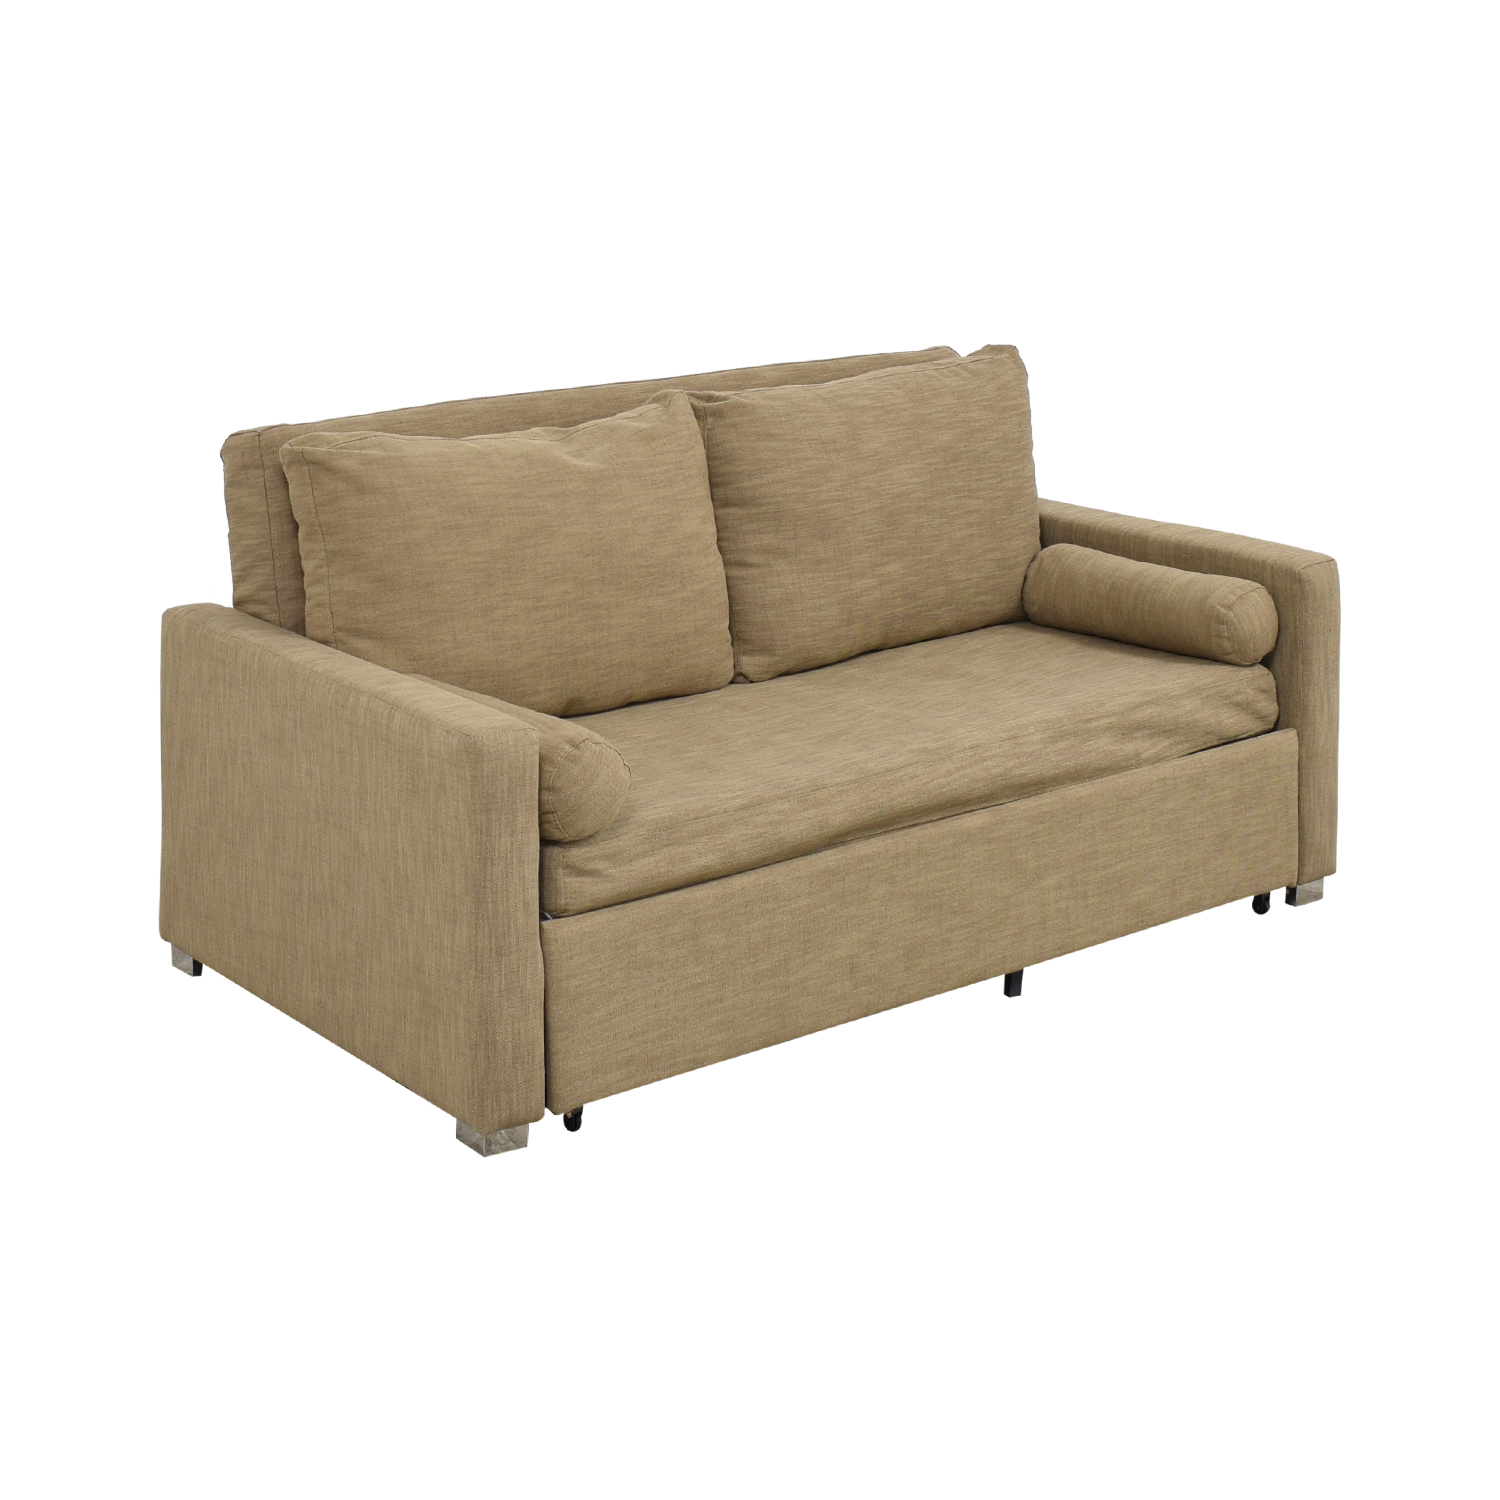 shop Expand Furniture Harmony Queen Sleeper Sofa